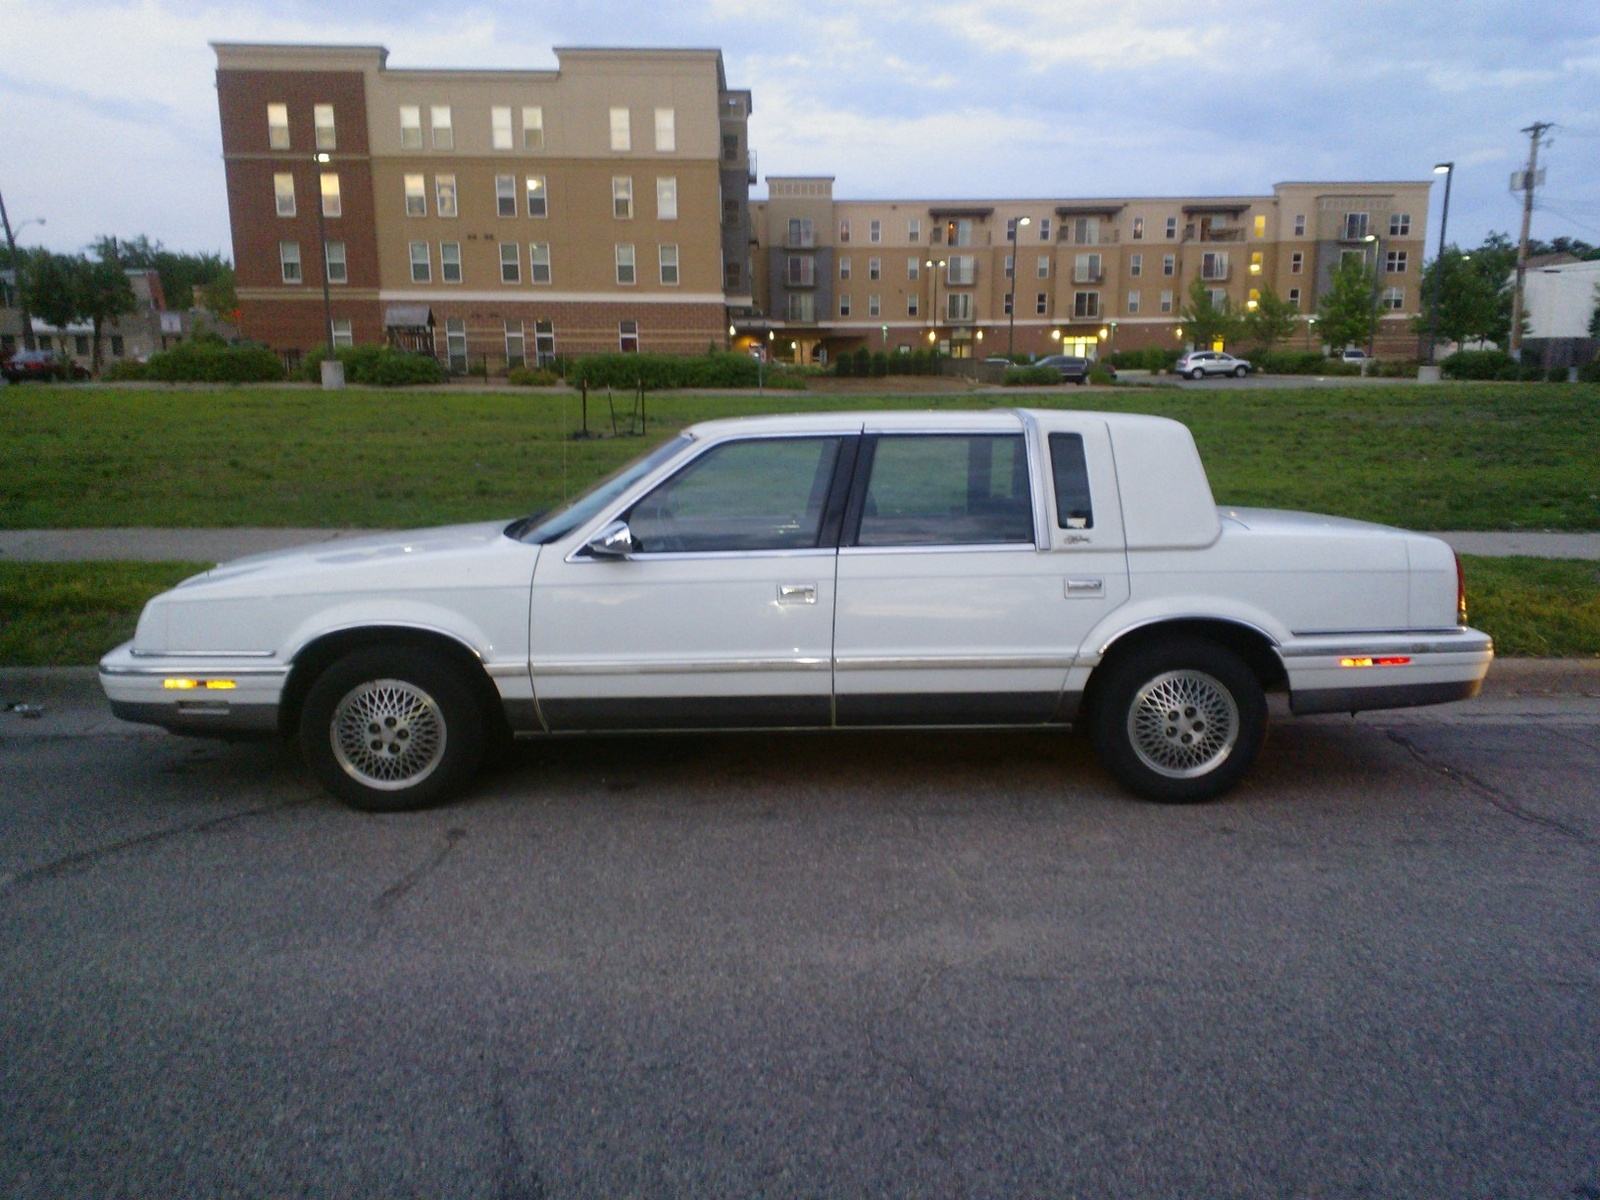 Chrysler new yorker questions where can i get brake for 1992 chrysler new yorker salon